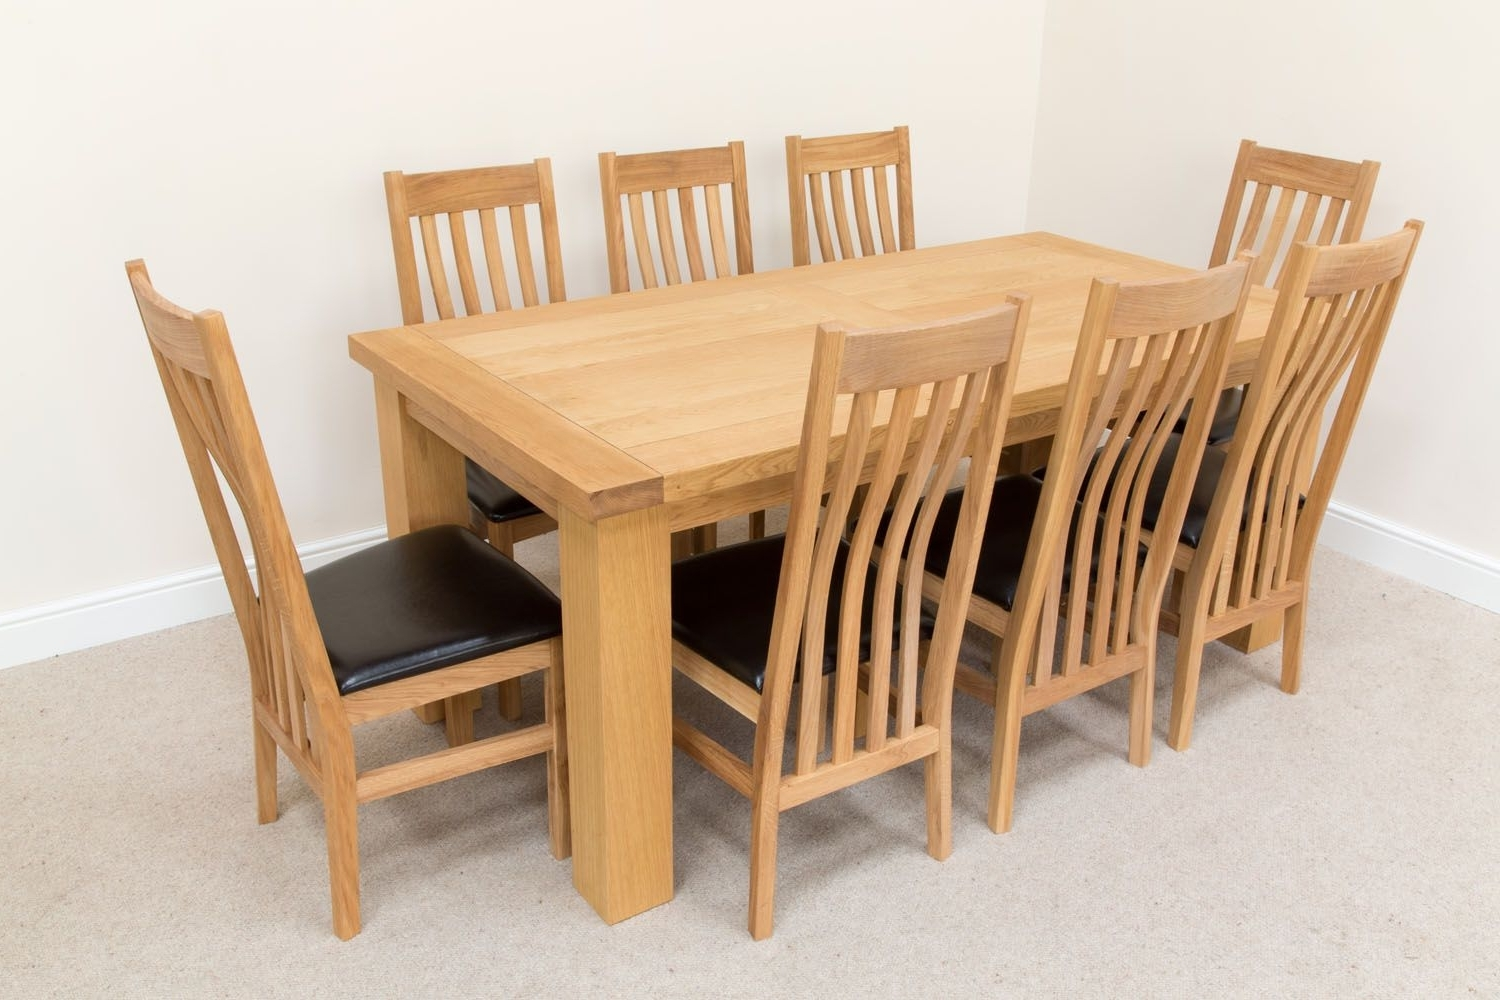 Oak Dining Tables 8 Chairs With Best And Newest Riga Oak Table 8 Seater Winchester Brown Chair Dining Set (View 6 of 25)